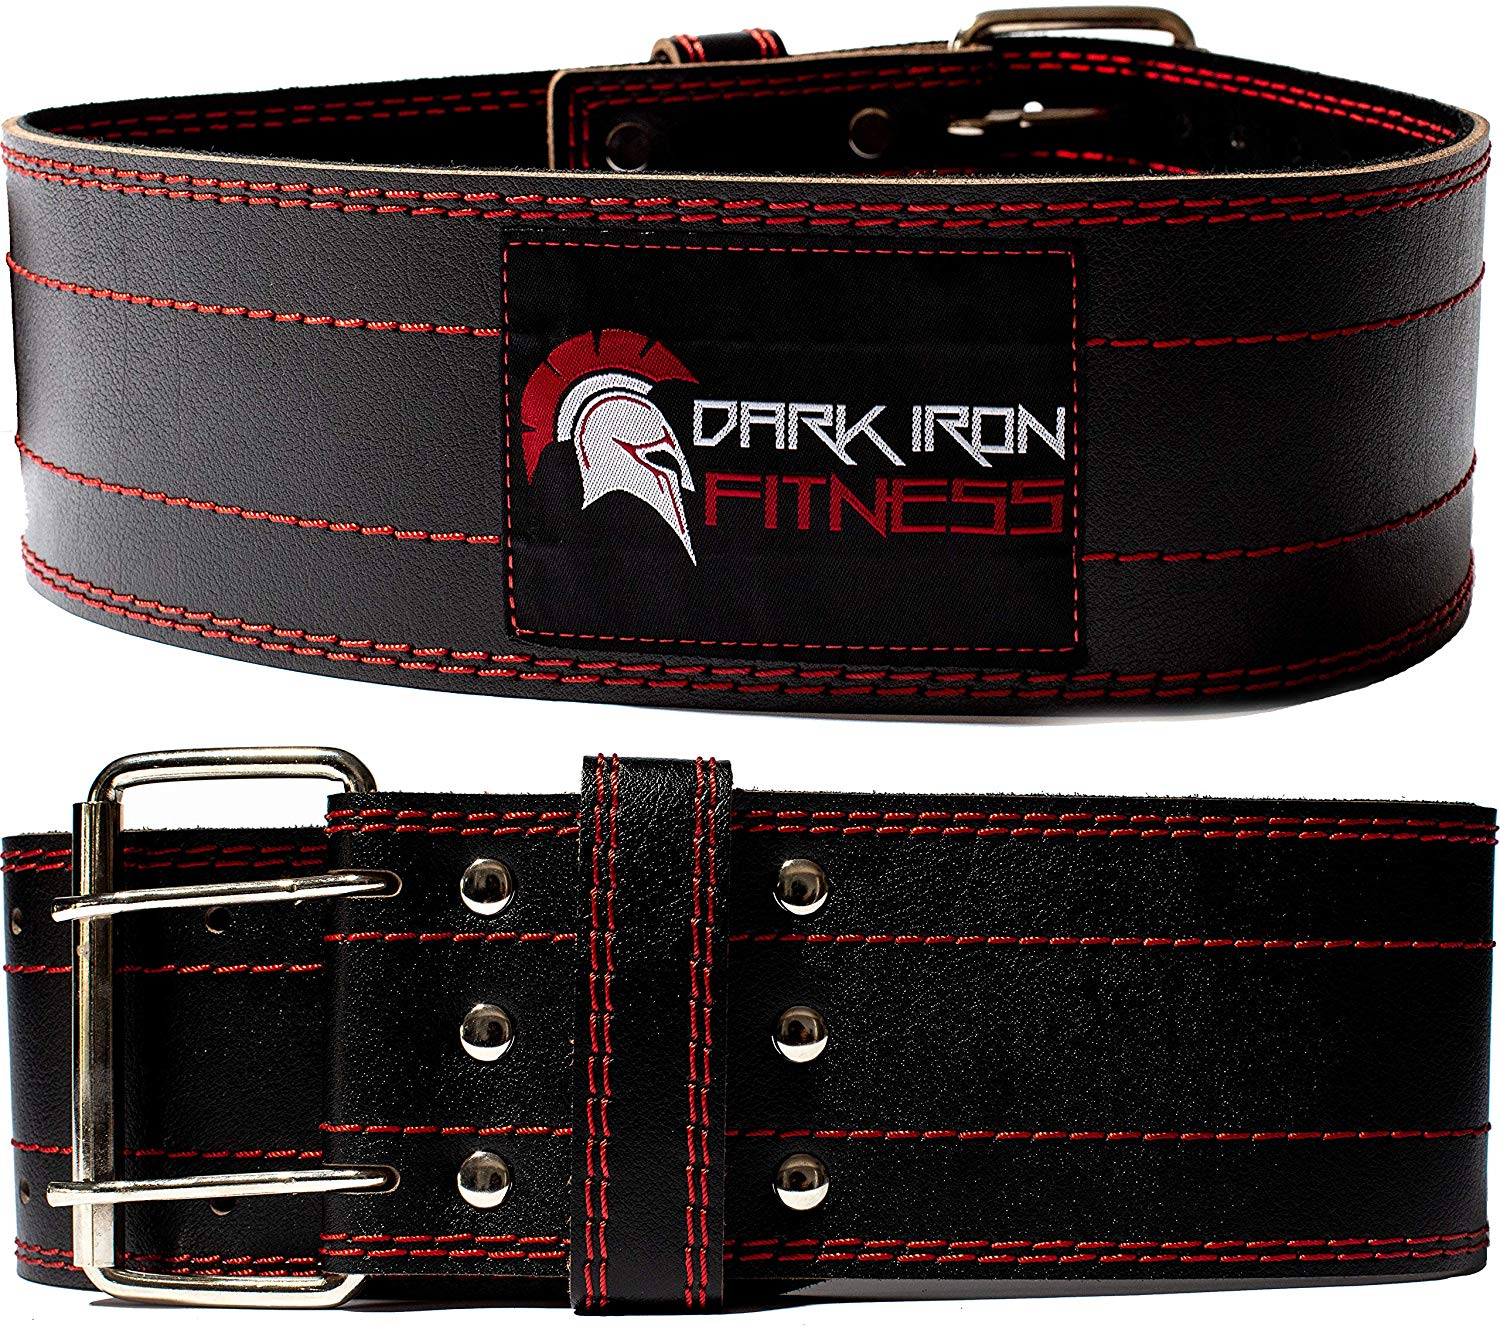 Dark Iron Fitness Men and Women Leather Pro Weight Lifting Belt